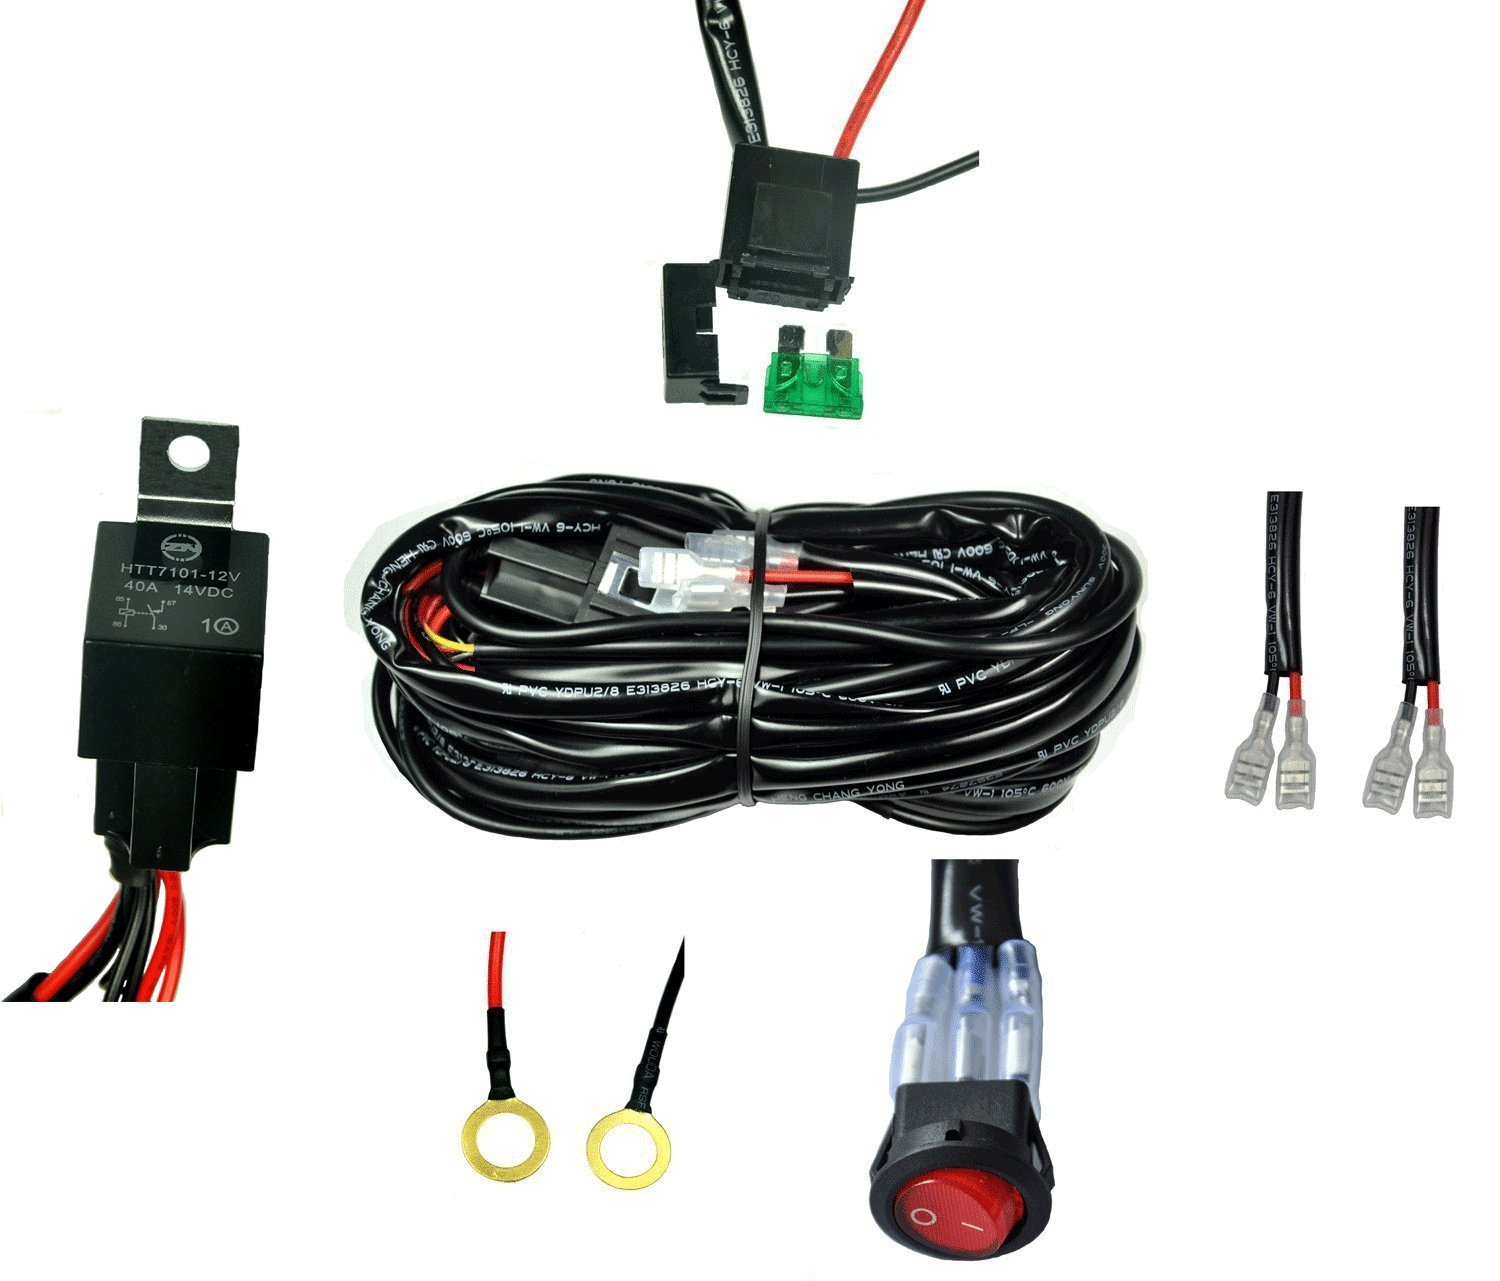 Cutequeen Wiring Harness Kit 40 Amp Relay On Off Switch Details About Led Hid Work Driving Light 12v 40a For Road Lights Atv Jeep Bar 2 Lead Automotive